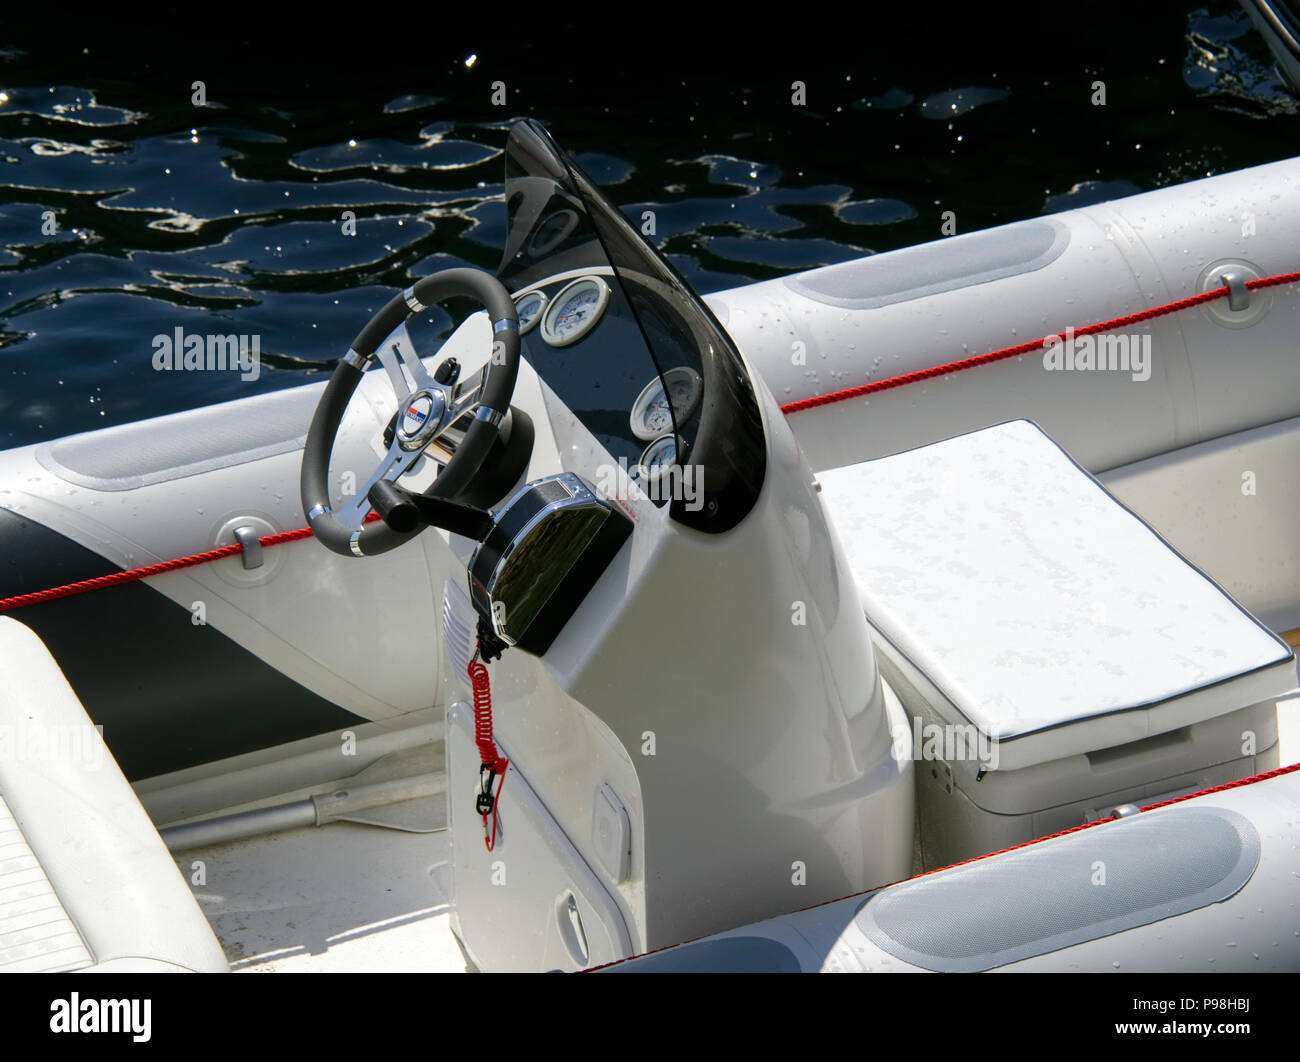 Control And Steering Position Of A Modern Rib Rigid Inflatable Boat Stock Photo Alamy